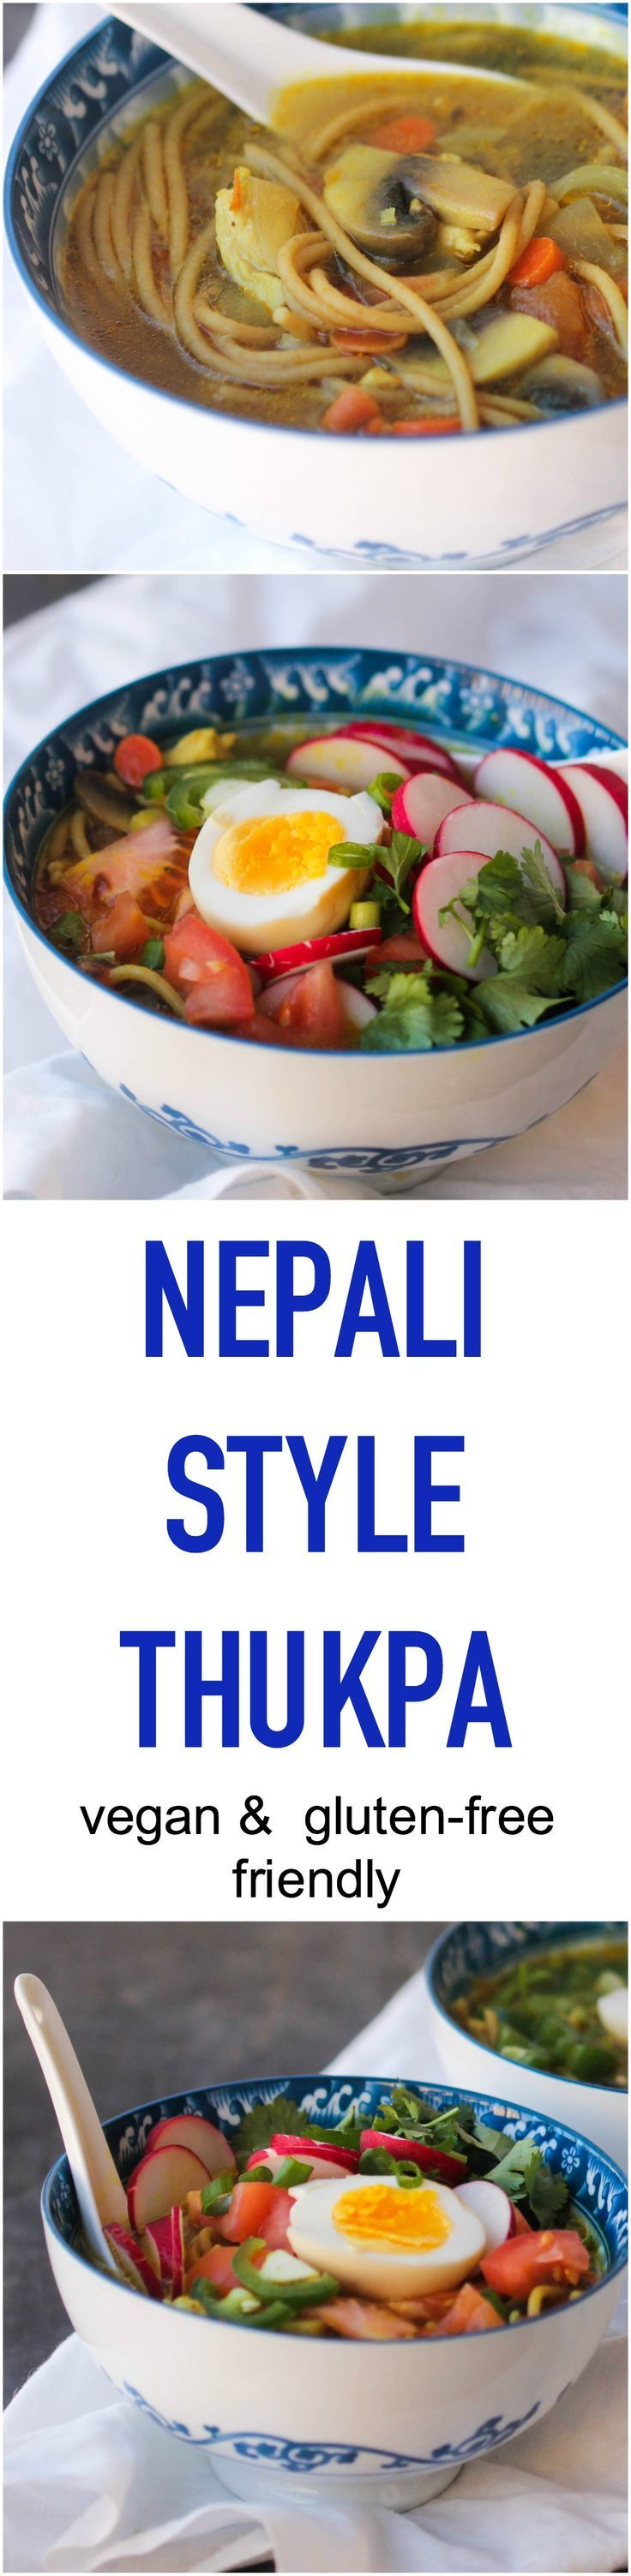 Nepali Style Thukpa is a cross between chicken noodle soup and ramen. It is a simple, wholesome, and comforting soup that is flexible to please every lifestyle. http://www.foodpleasureandhealth.com/2017/02/nepali-style-thukpa.html